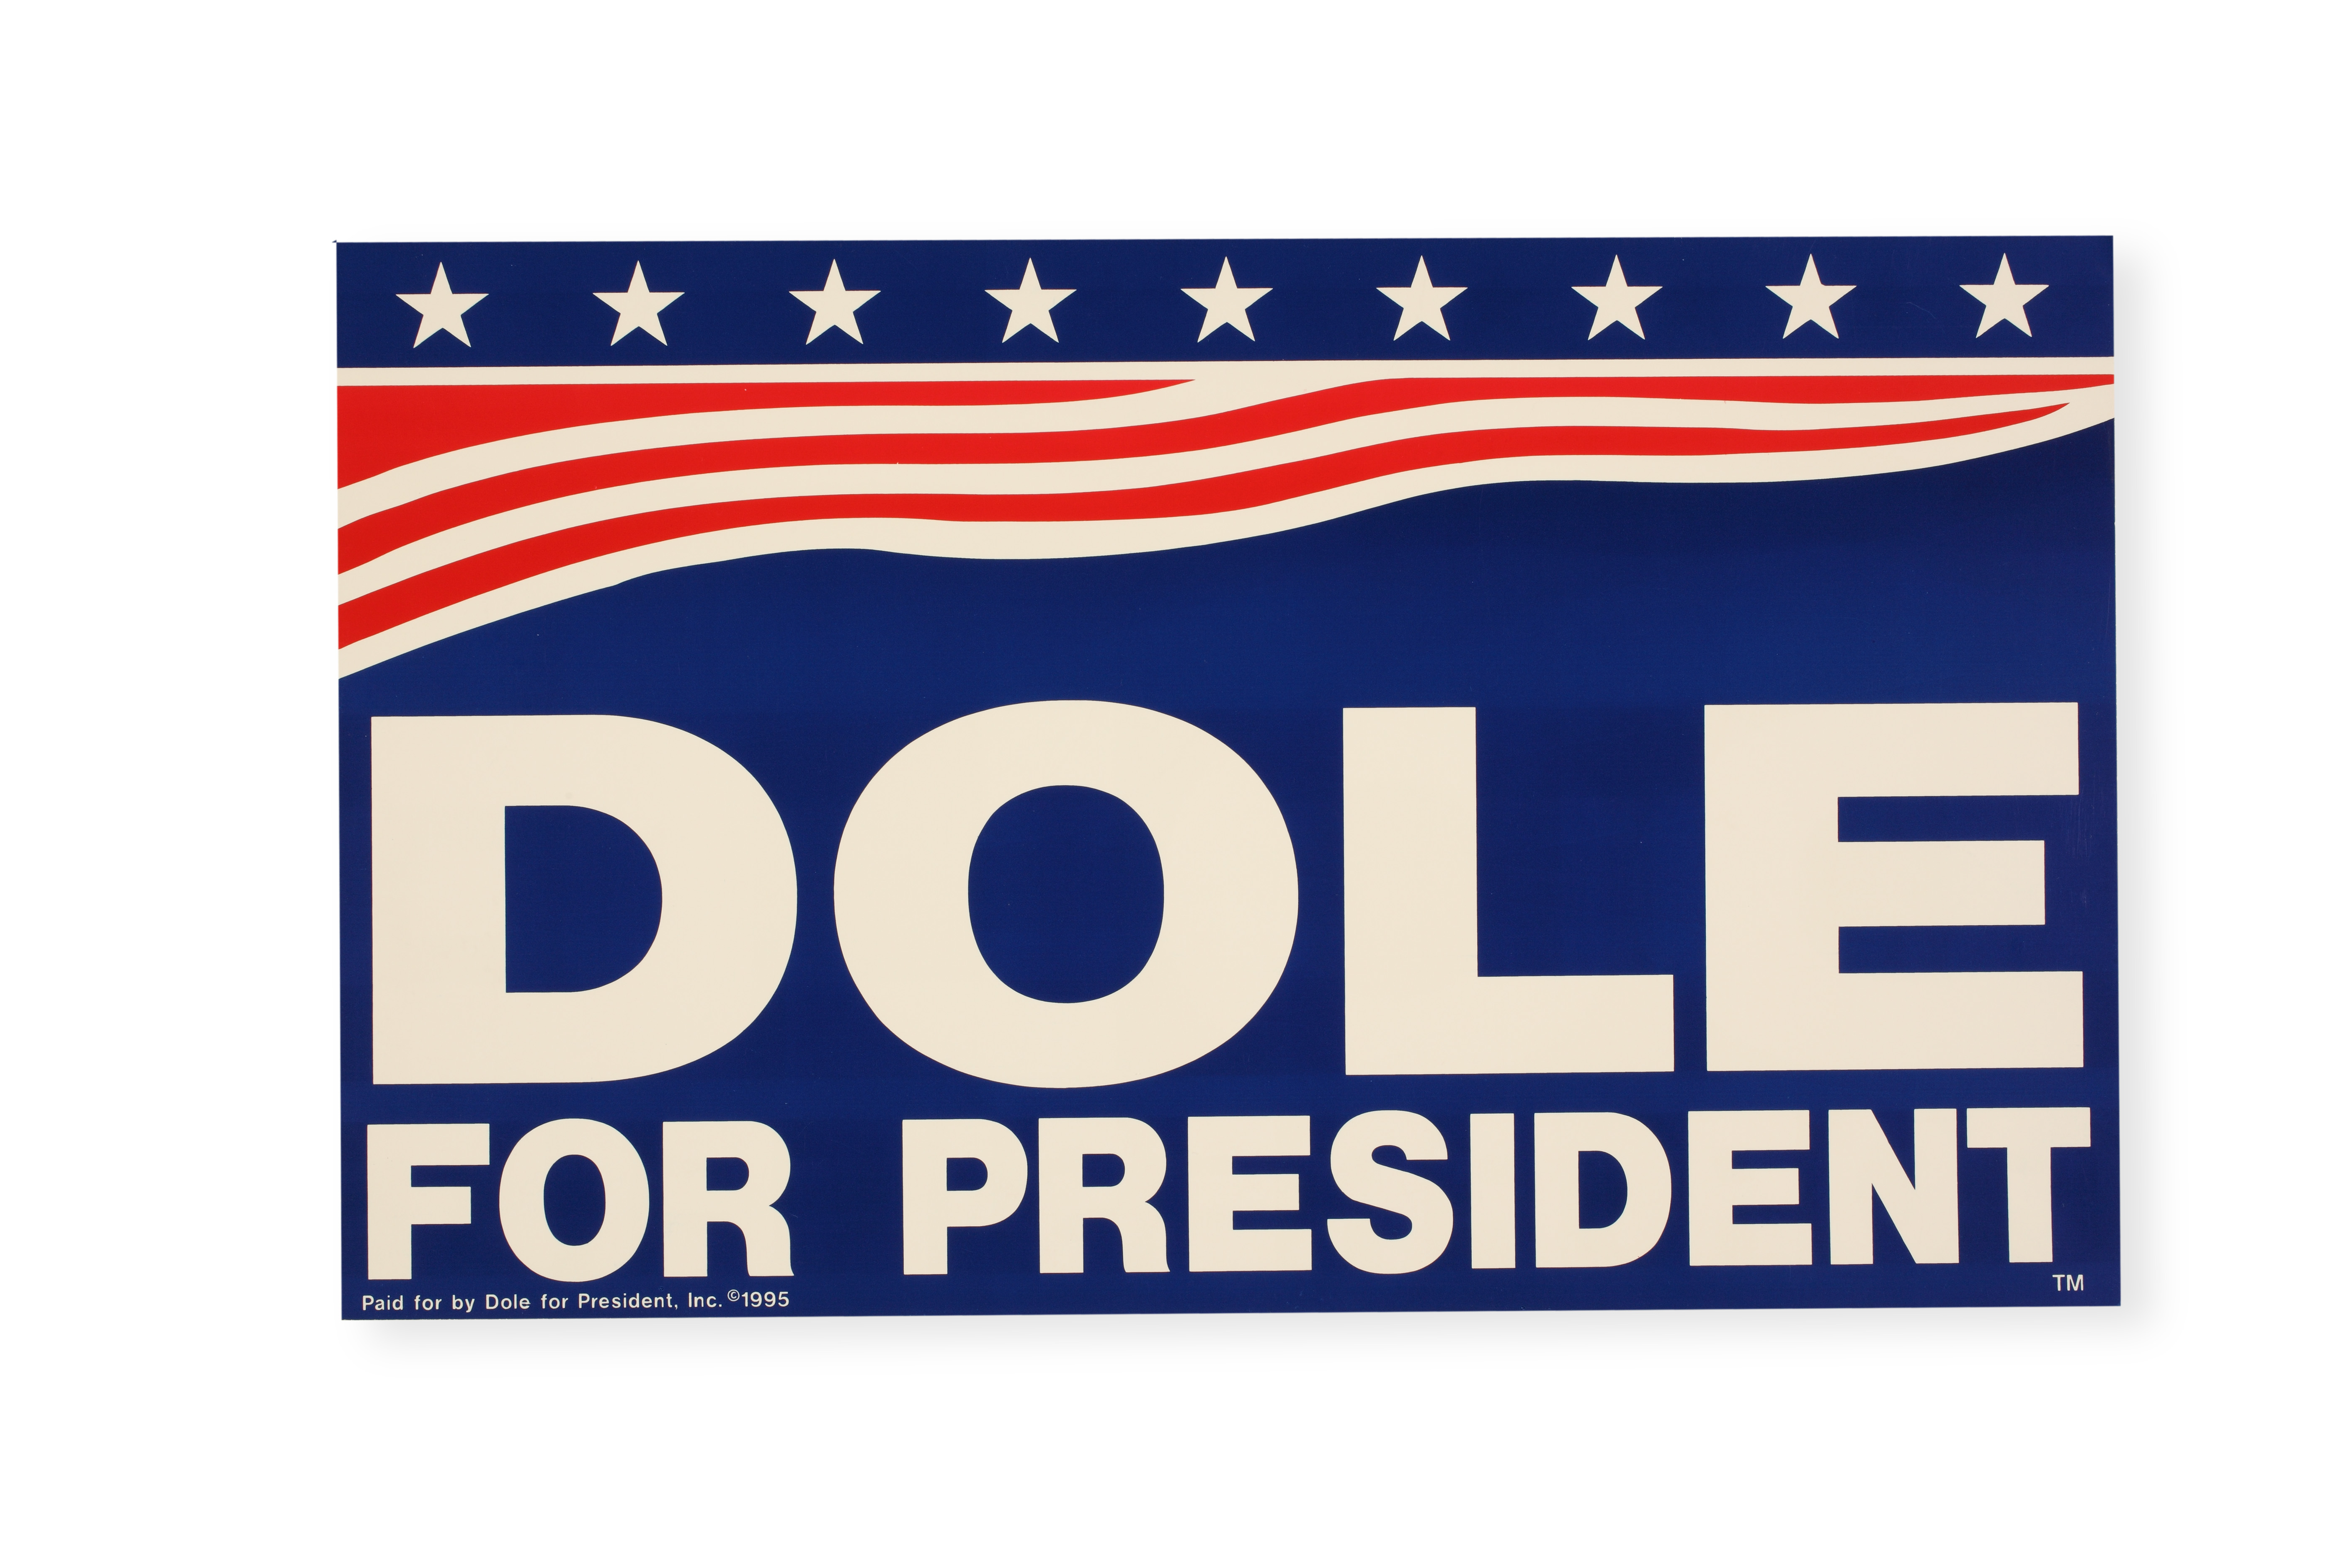 Poster for 1996 Dole presidential campaign